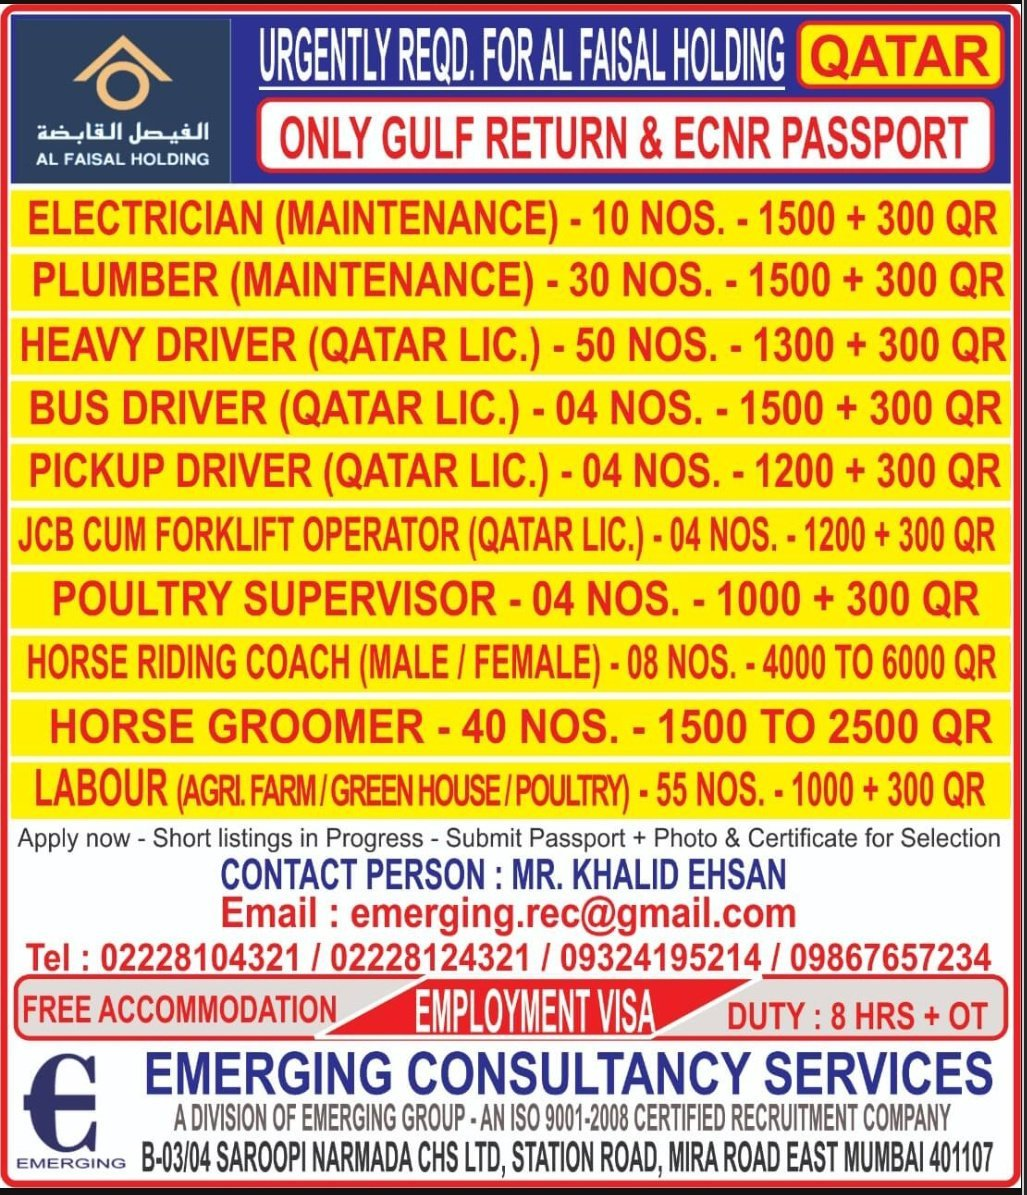 URGENTLY REQUIRED FOR AL FAISAL HOLDING-QATAR